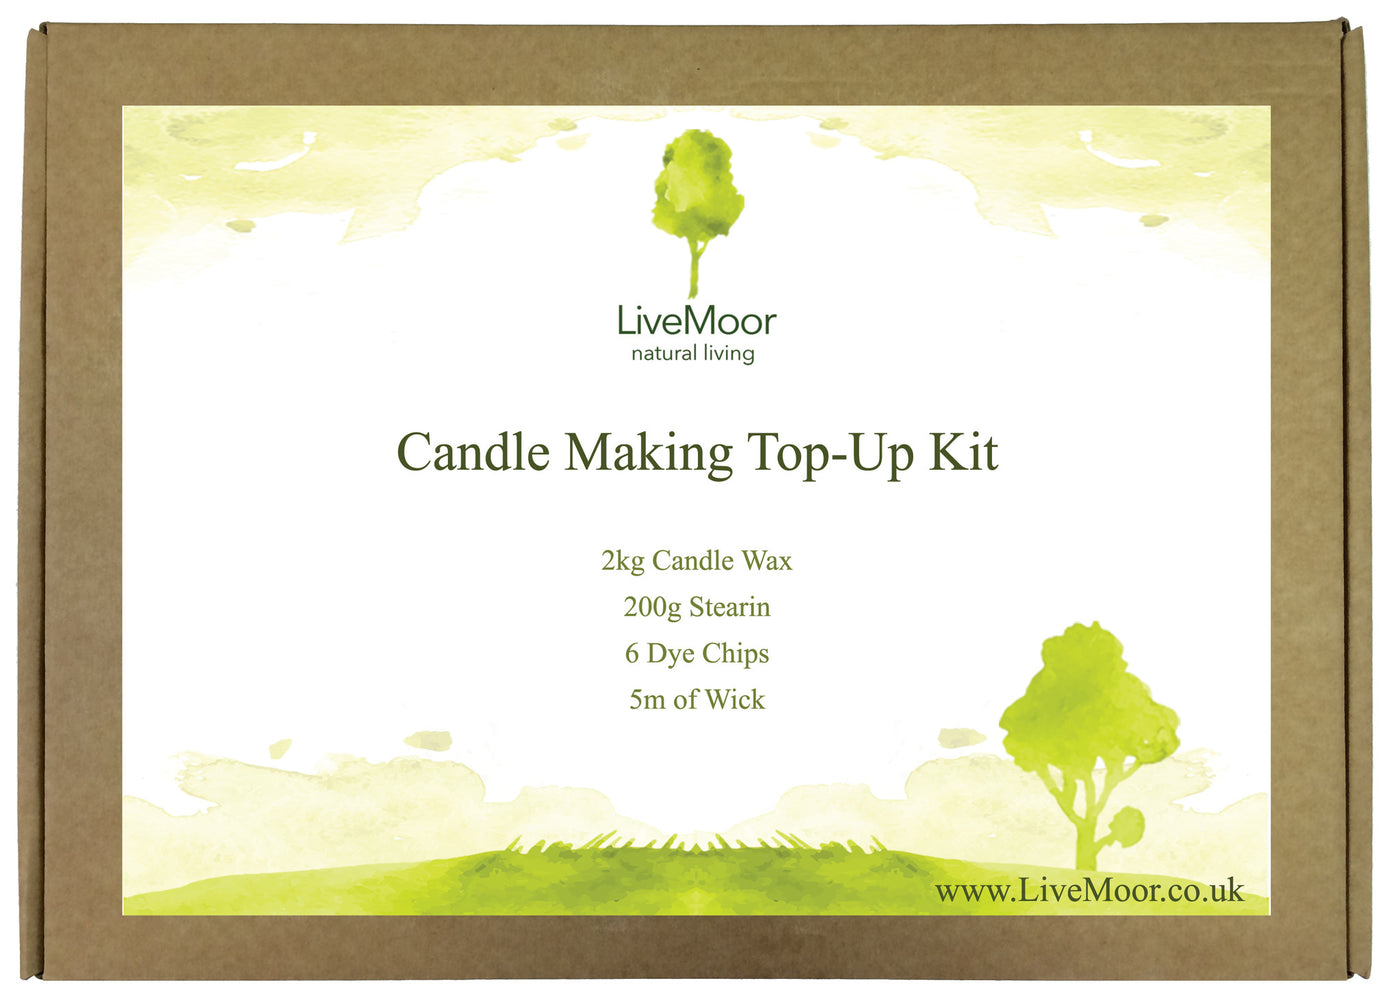 The livemoor candle making top up kit stopboris Image collections